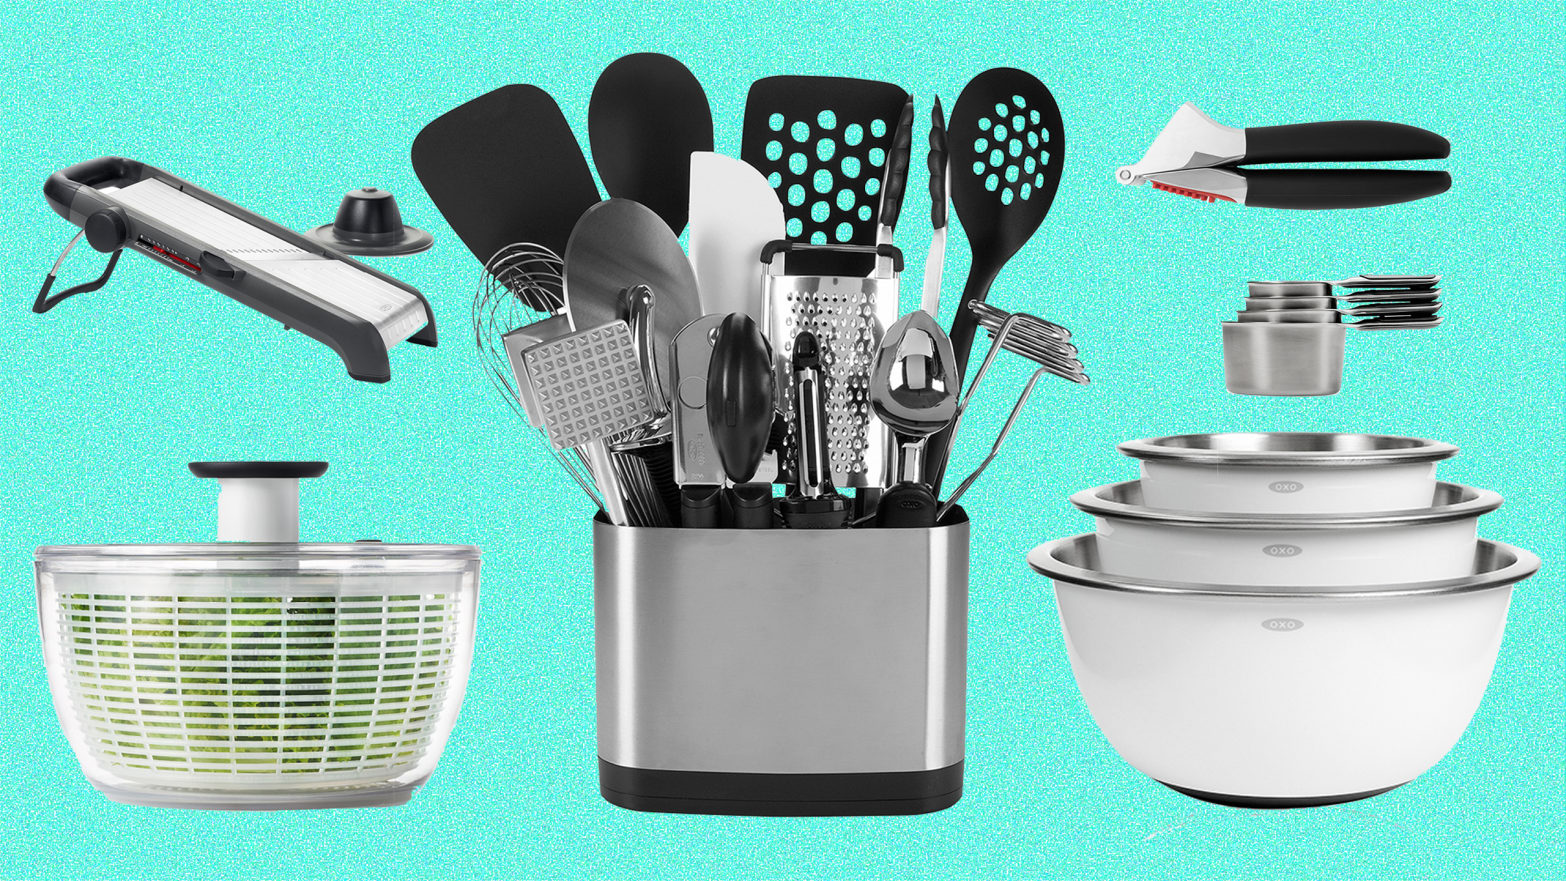 OXO Kitchenware is Up to 40% Off During Macy's BIG Sale